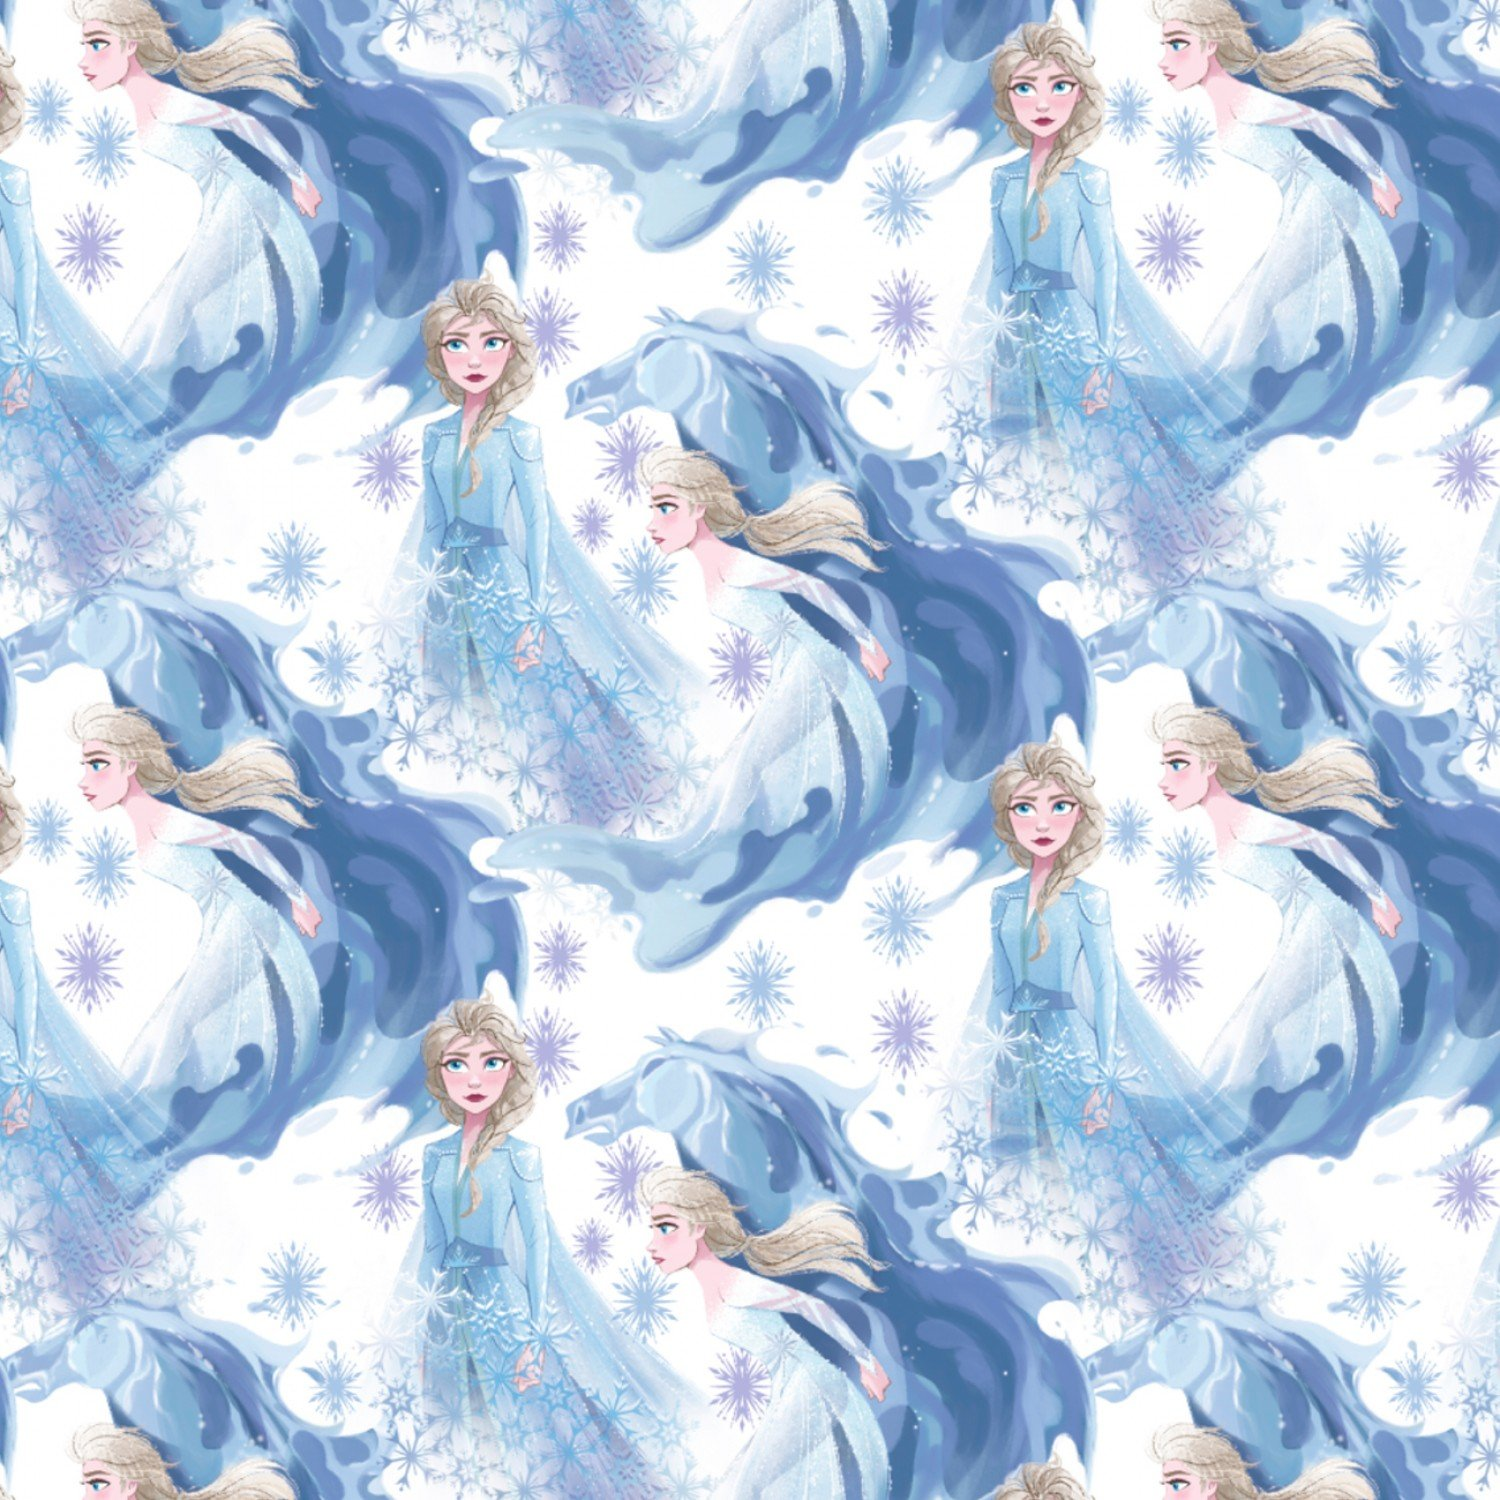 Frozen 2 Elsa And Anna Fabric from Disney for Springs Creative